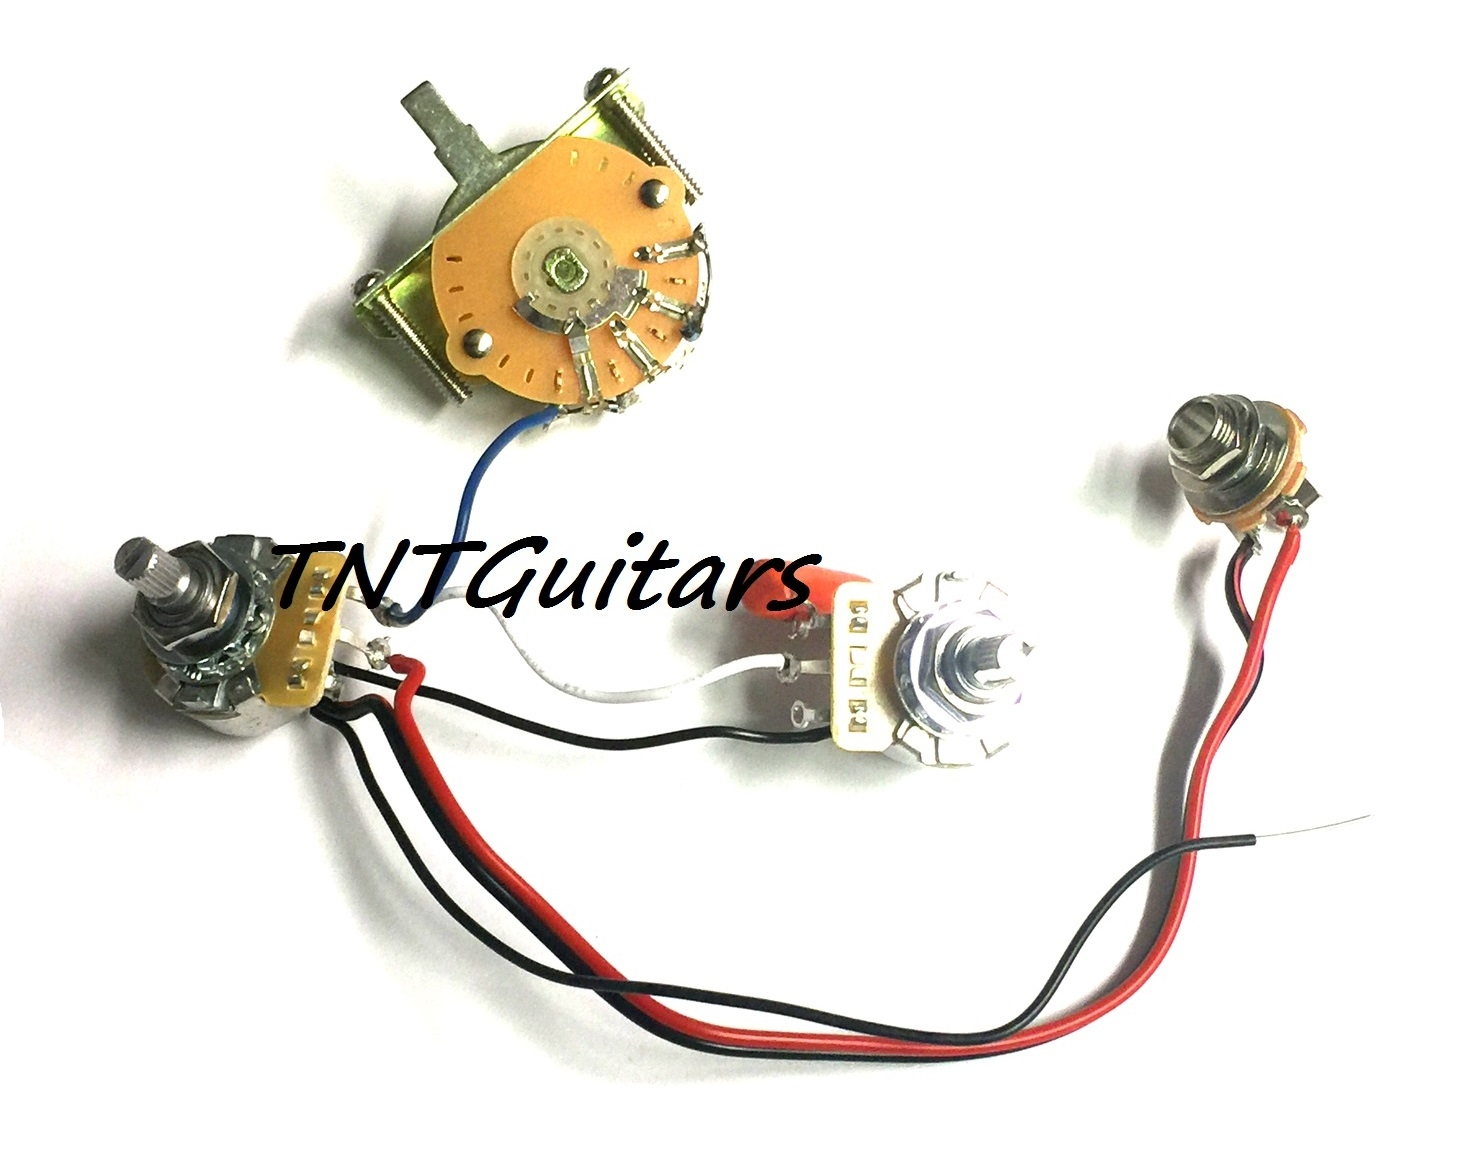 Wiring Up Guitar Electronics 2 Soldering Backs Of Pots How To Save